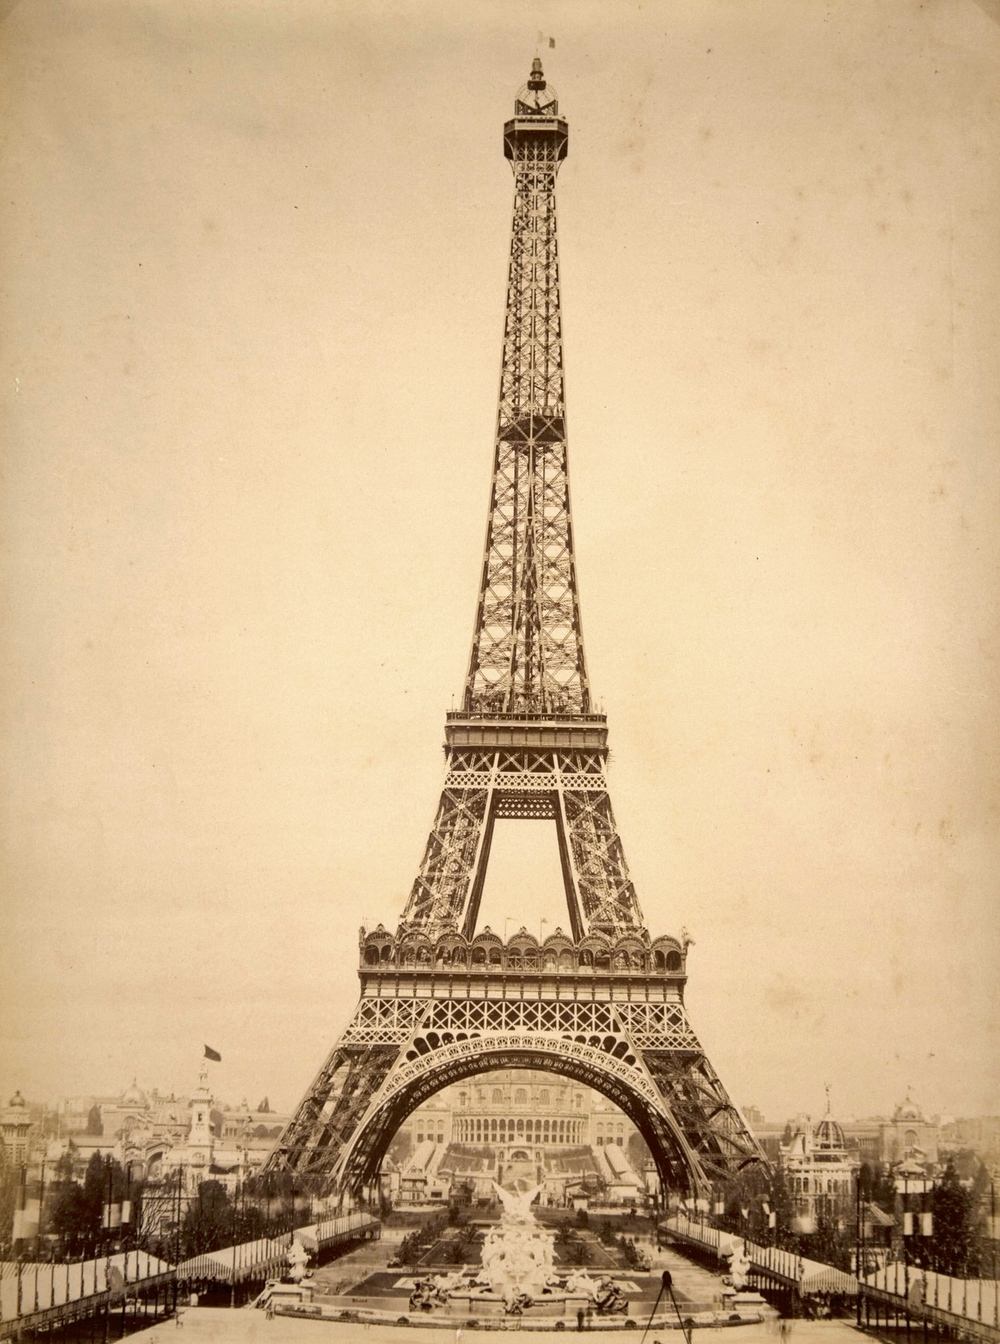 Eiffel Tower in 1899